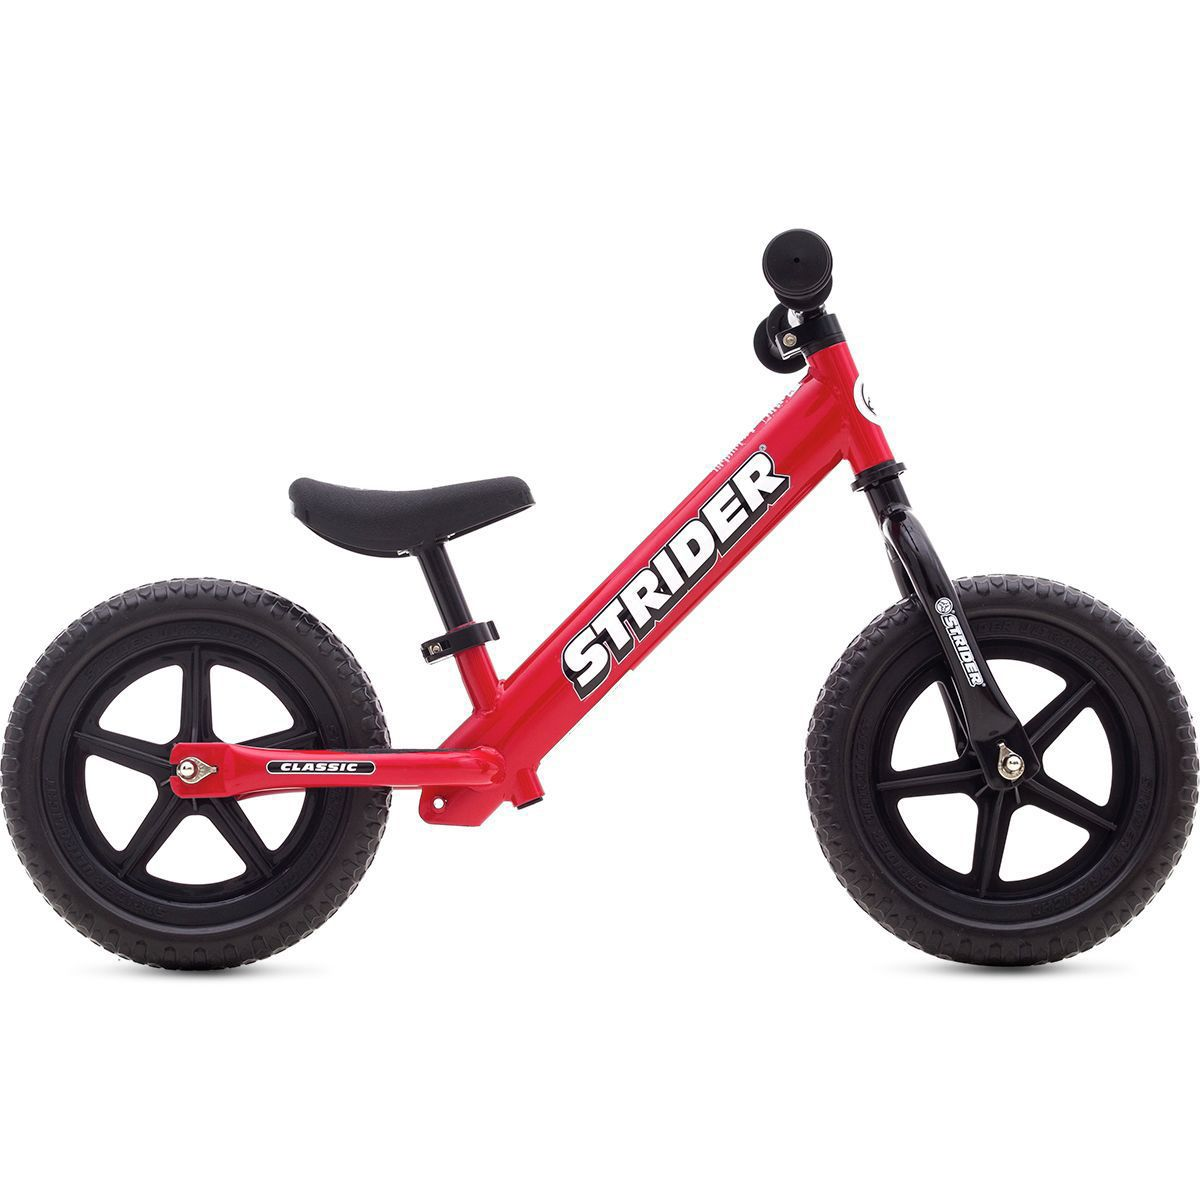 STRIDER 12 Classic Balance Bike Learn To Ride Bike No Pedals RED